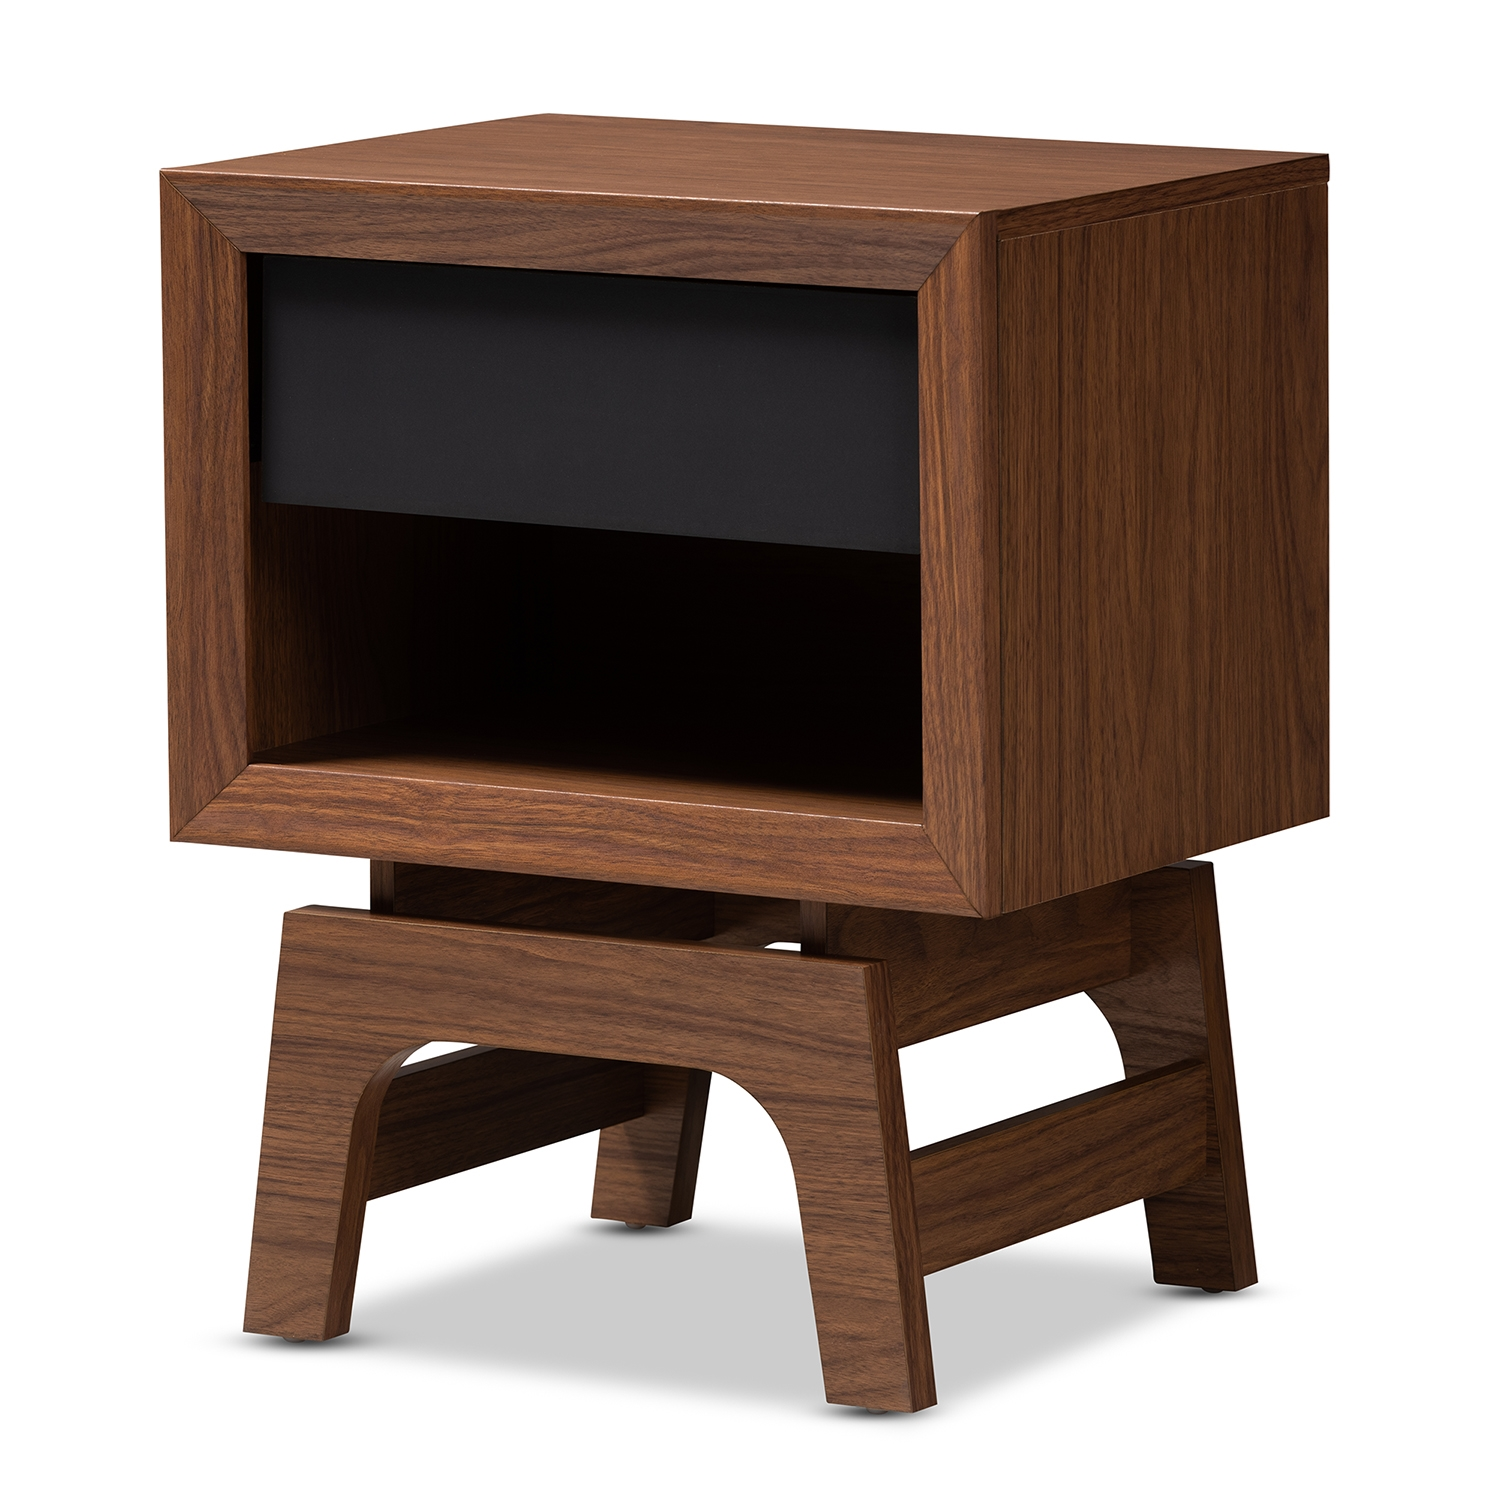 Baxton Studio Svante Mid Century Modern Walnut Brown And Dark Gray Finished Wood 1 Drawer Nightstand